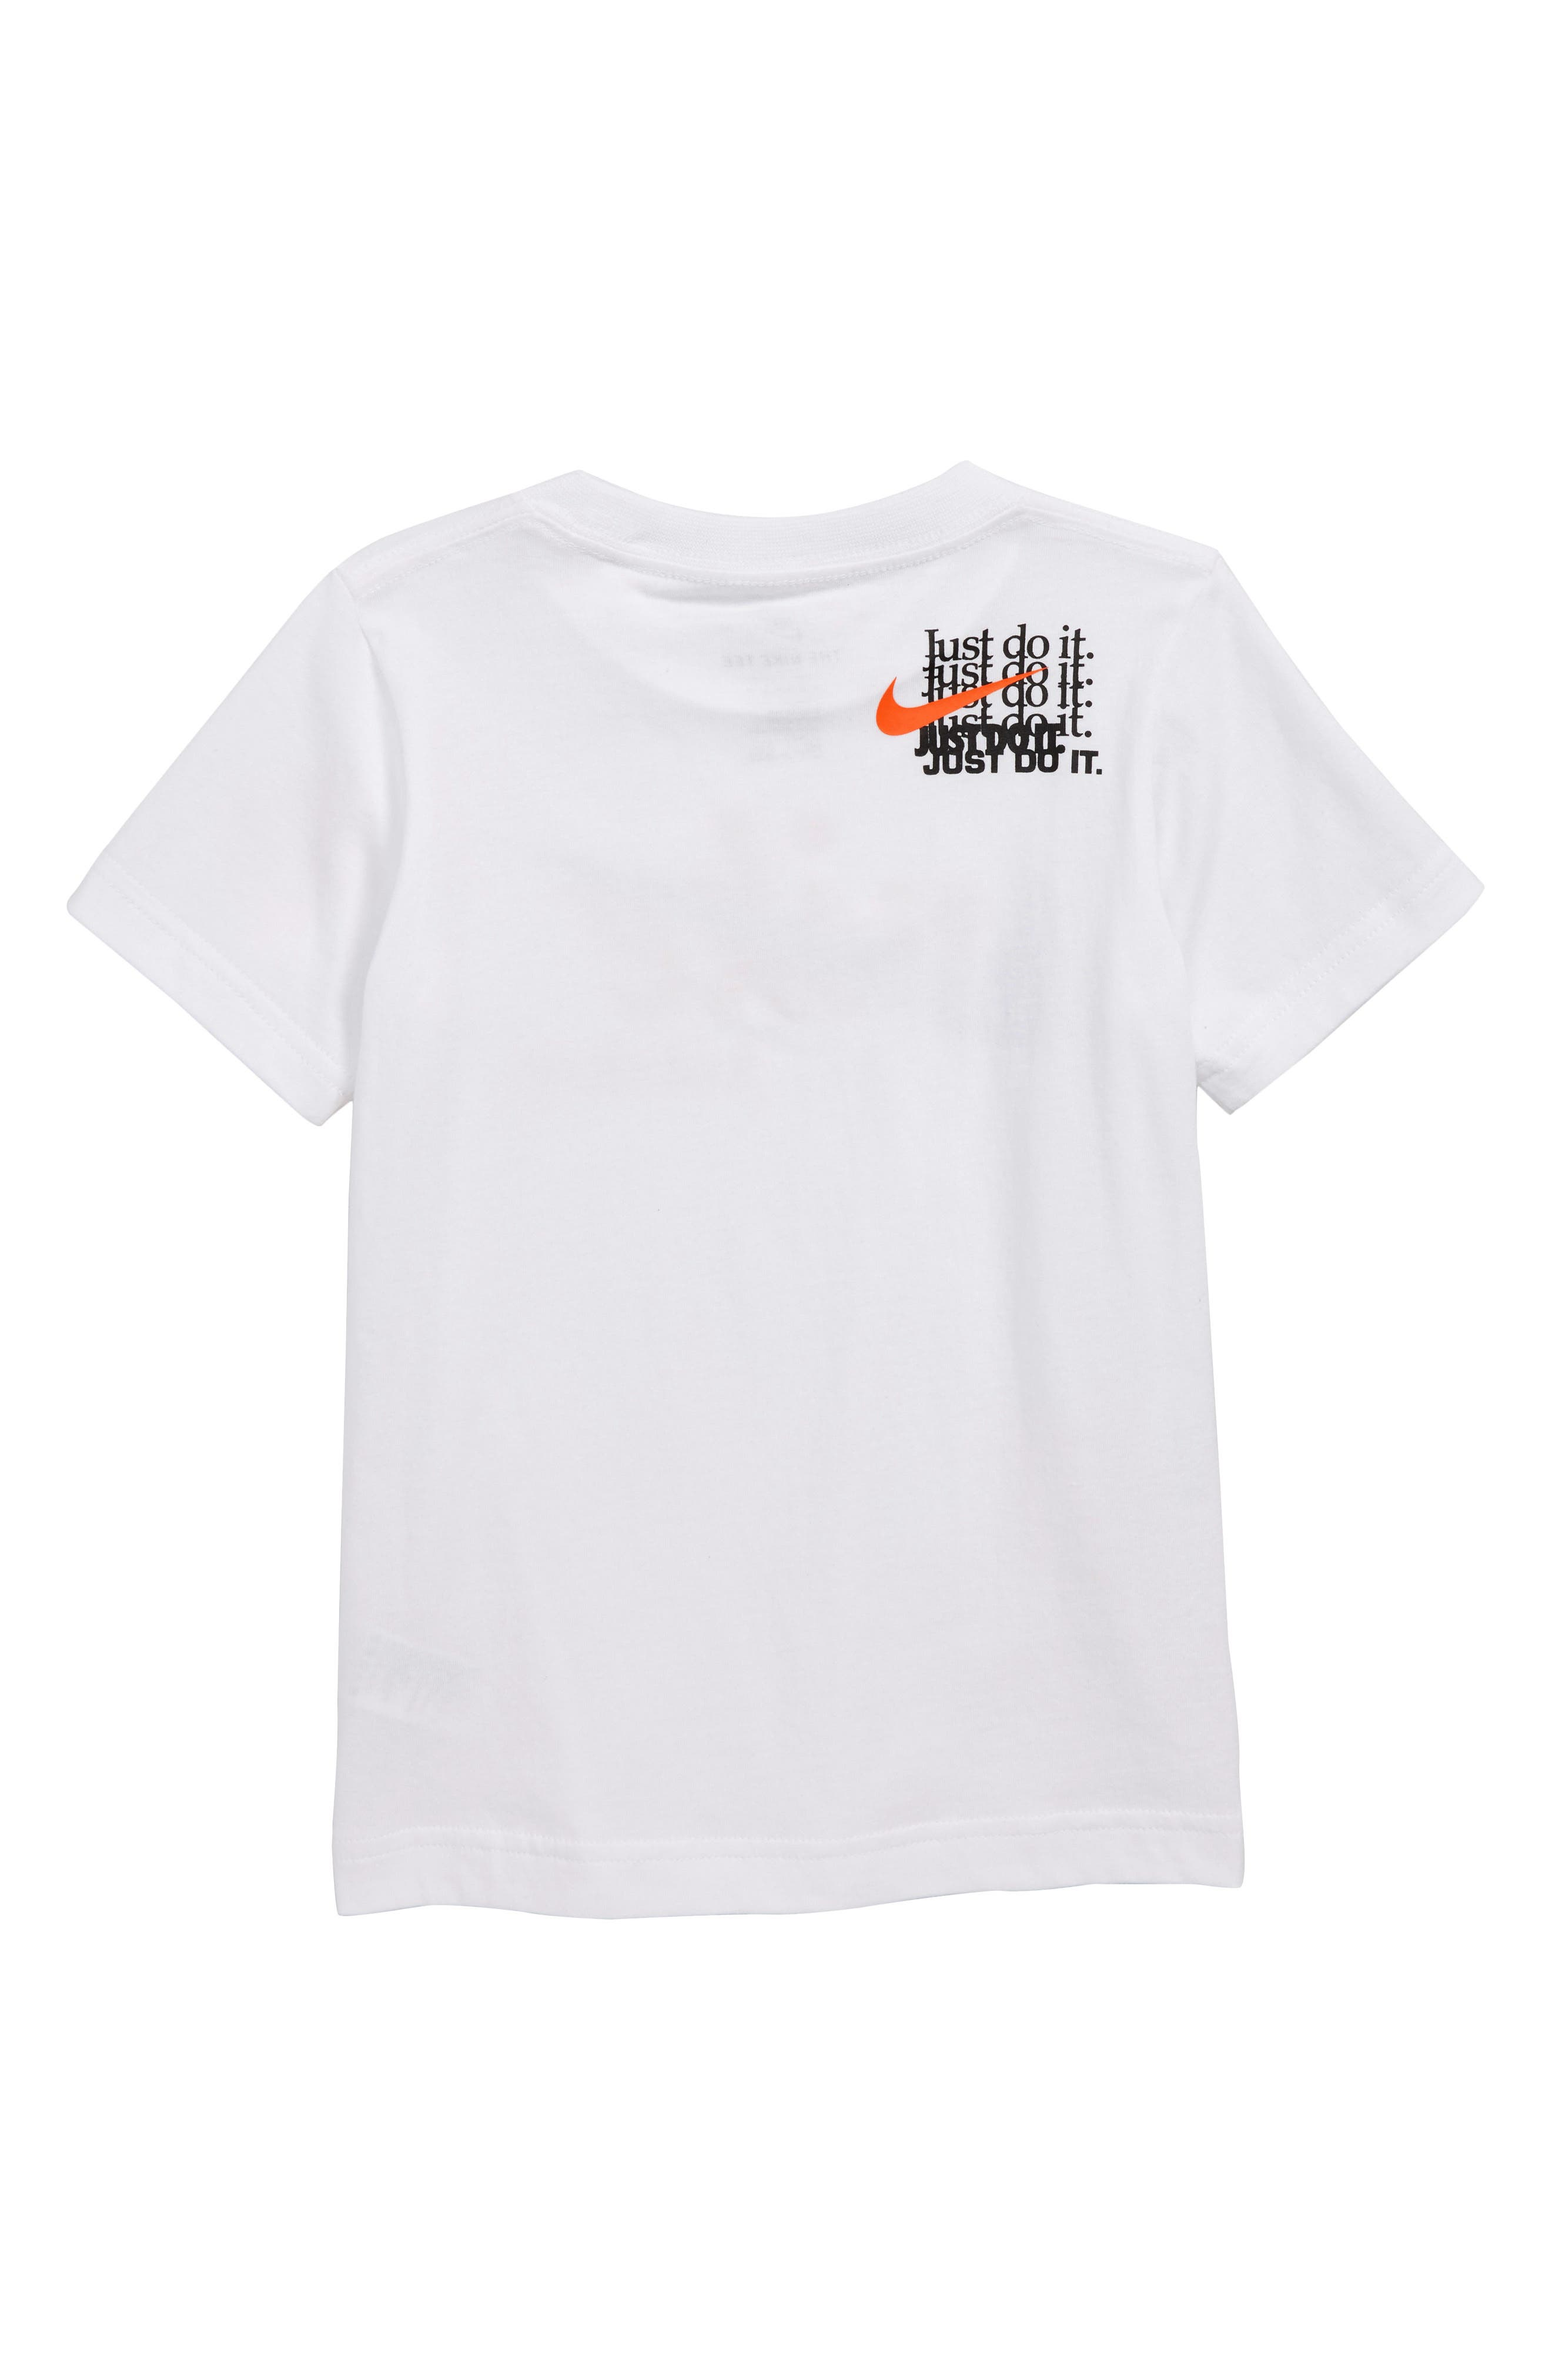 Just Do It T-Shirt,                             Alternate thumbnail 2, color,                             WHITE